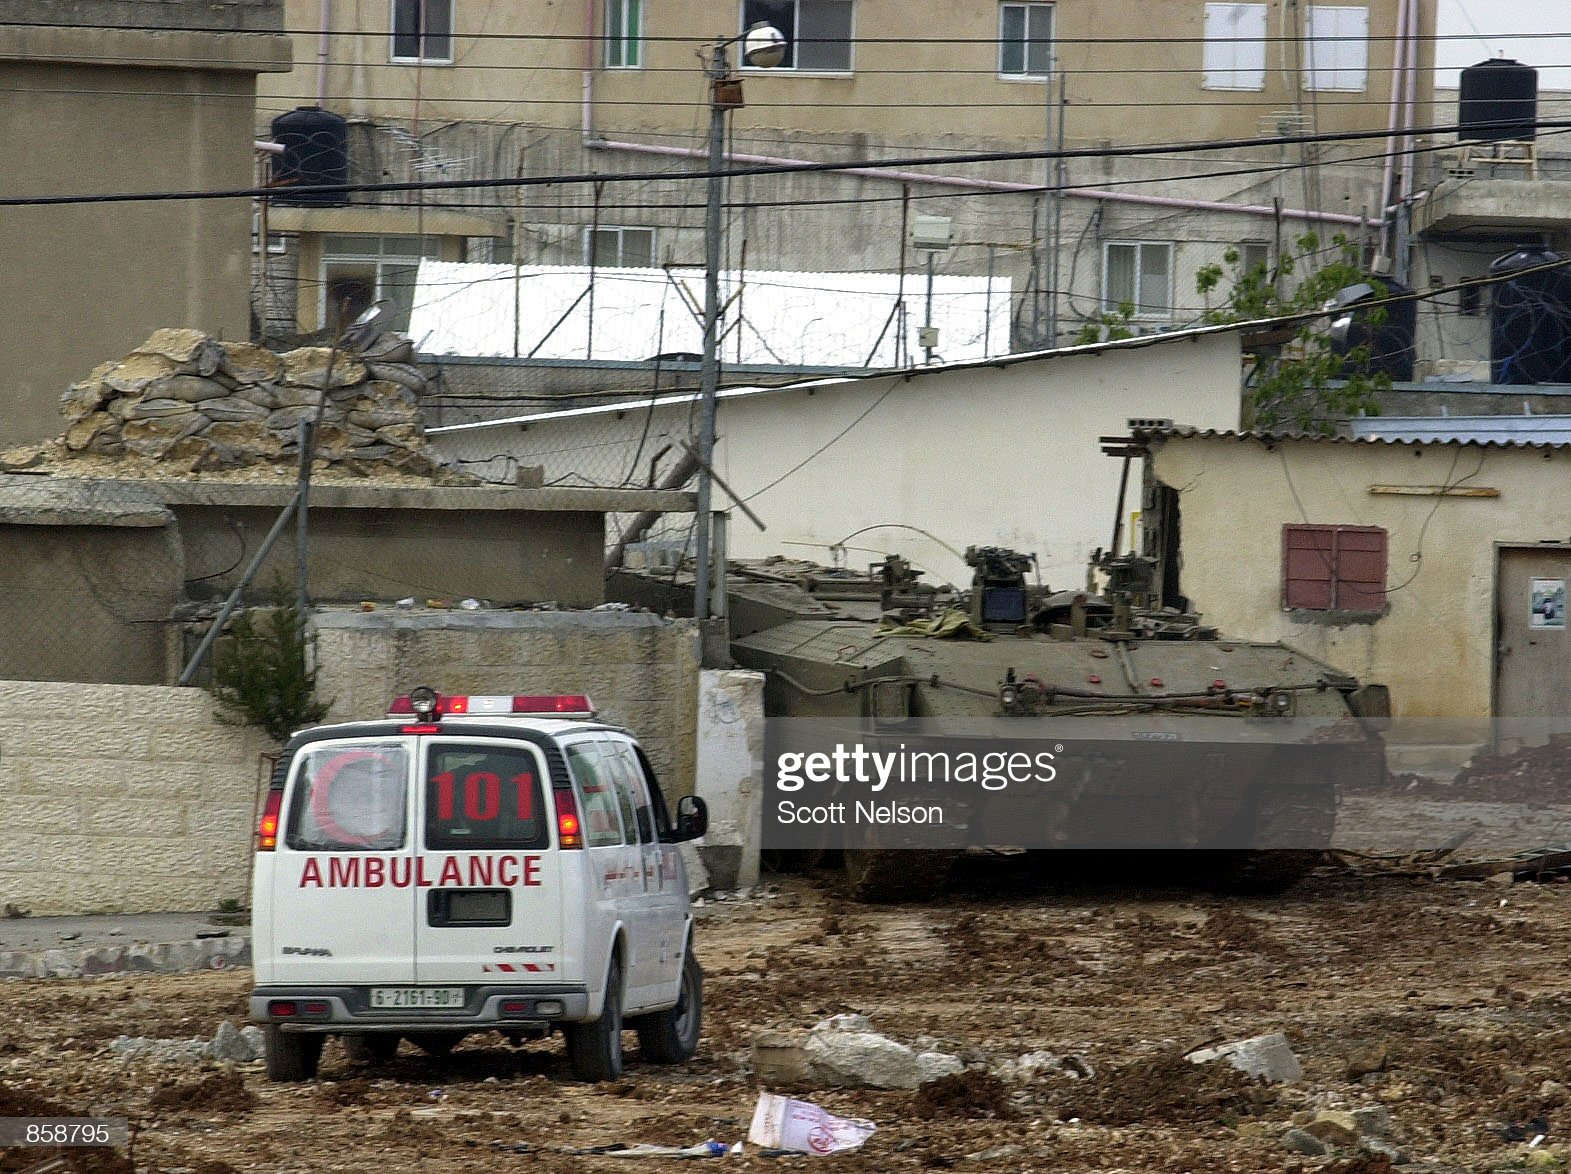 https://media.gettyimages.com/photos/palestinian-ambulance-approaches-an-armored-personnel-carrier-an-to-picture-id858795?s=2048x2048